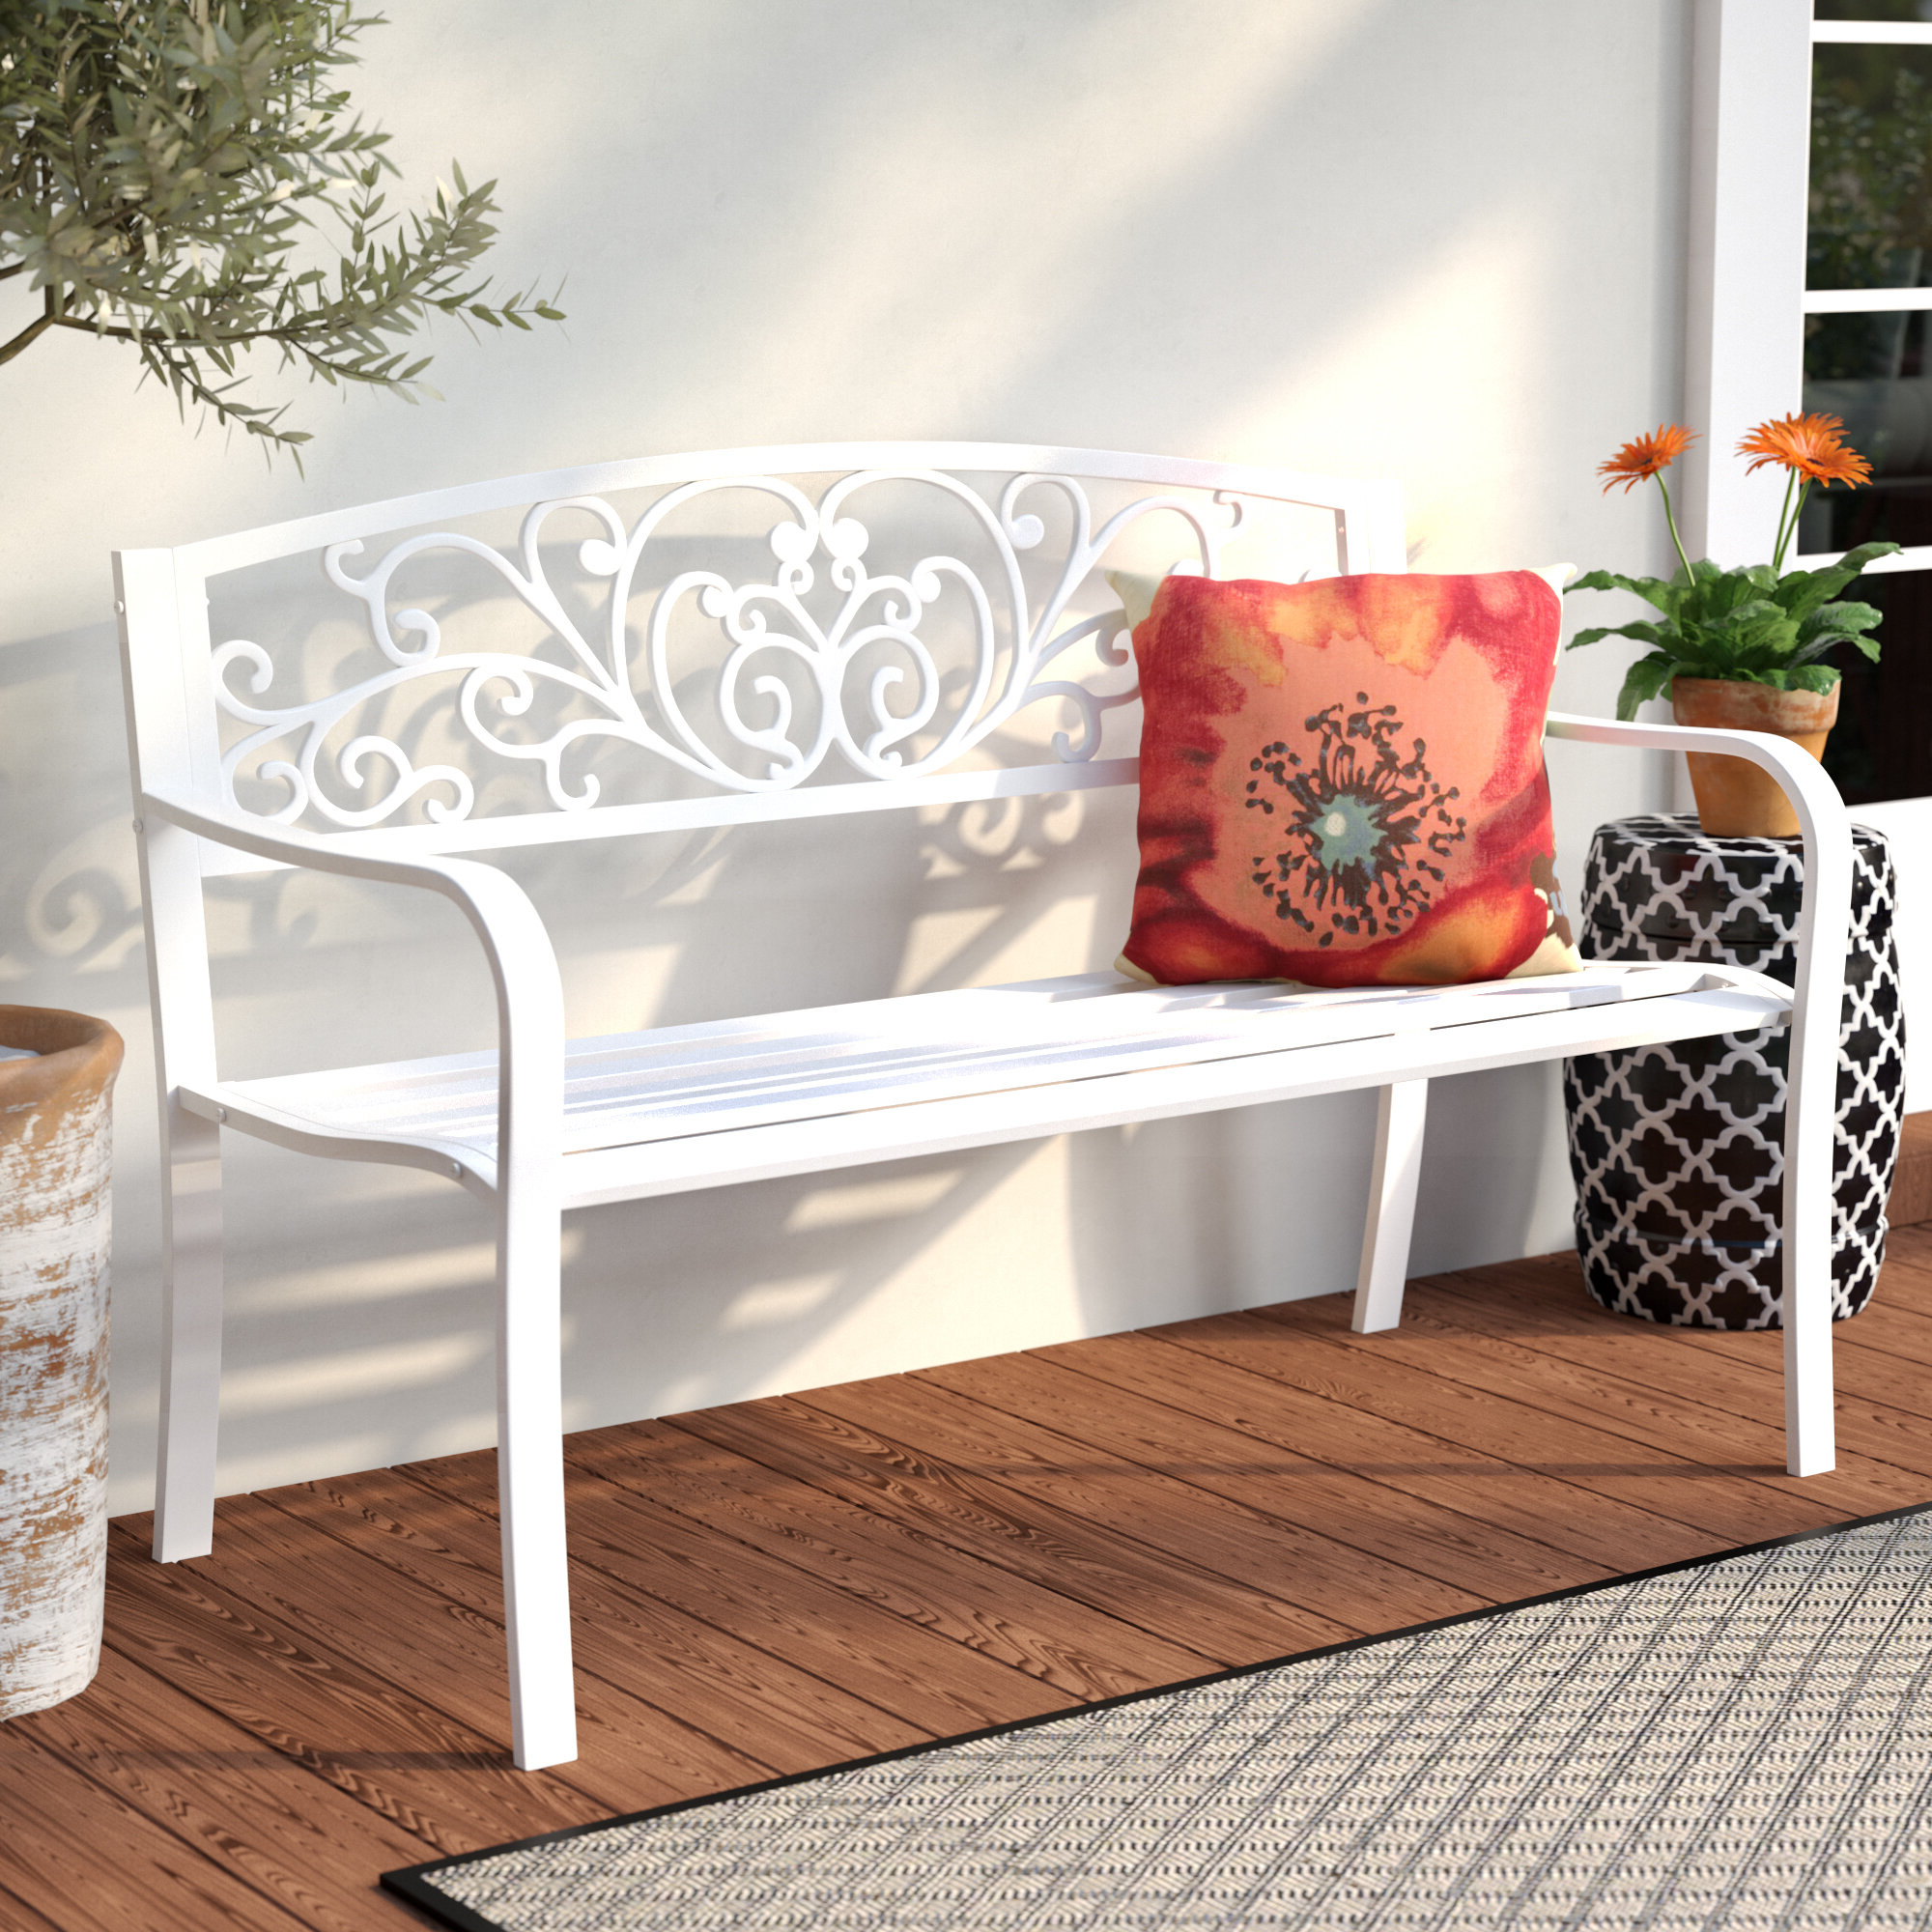 Widely Used Strasburg Blossoming Decorative Iron Garden Benches Pertaining To Carennac Scroll Backrest Iron Garden Bench (View 3 of 30)